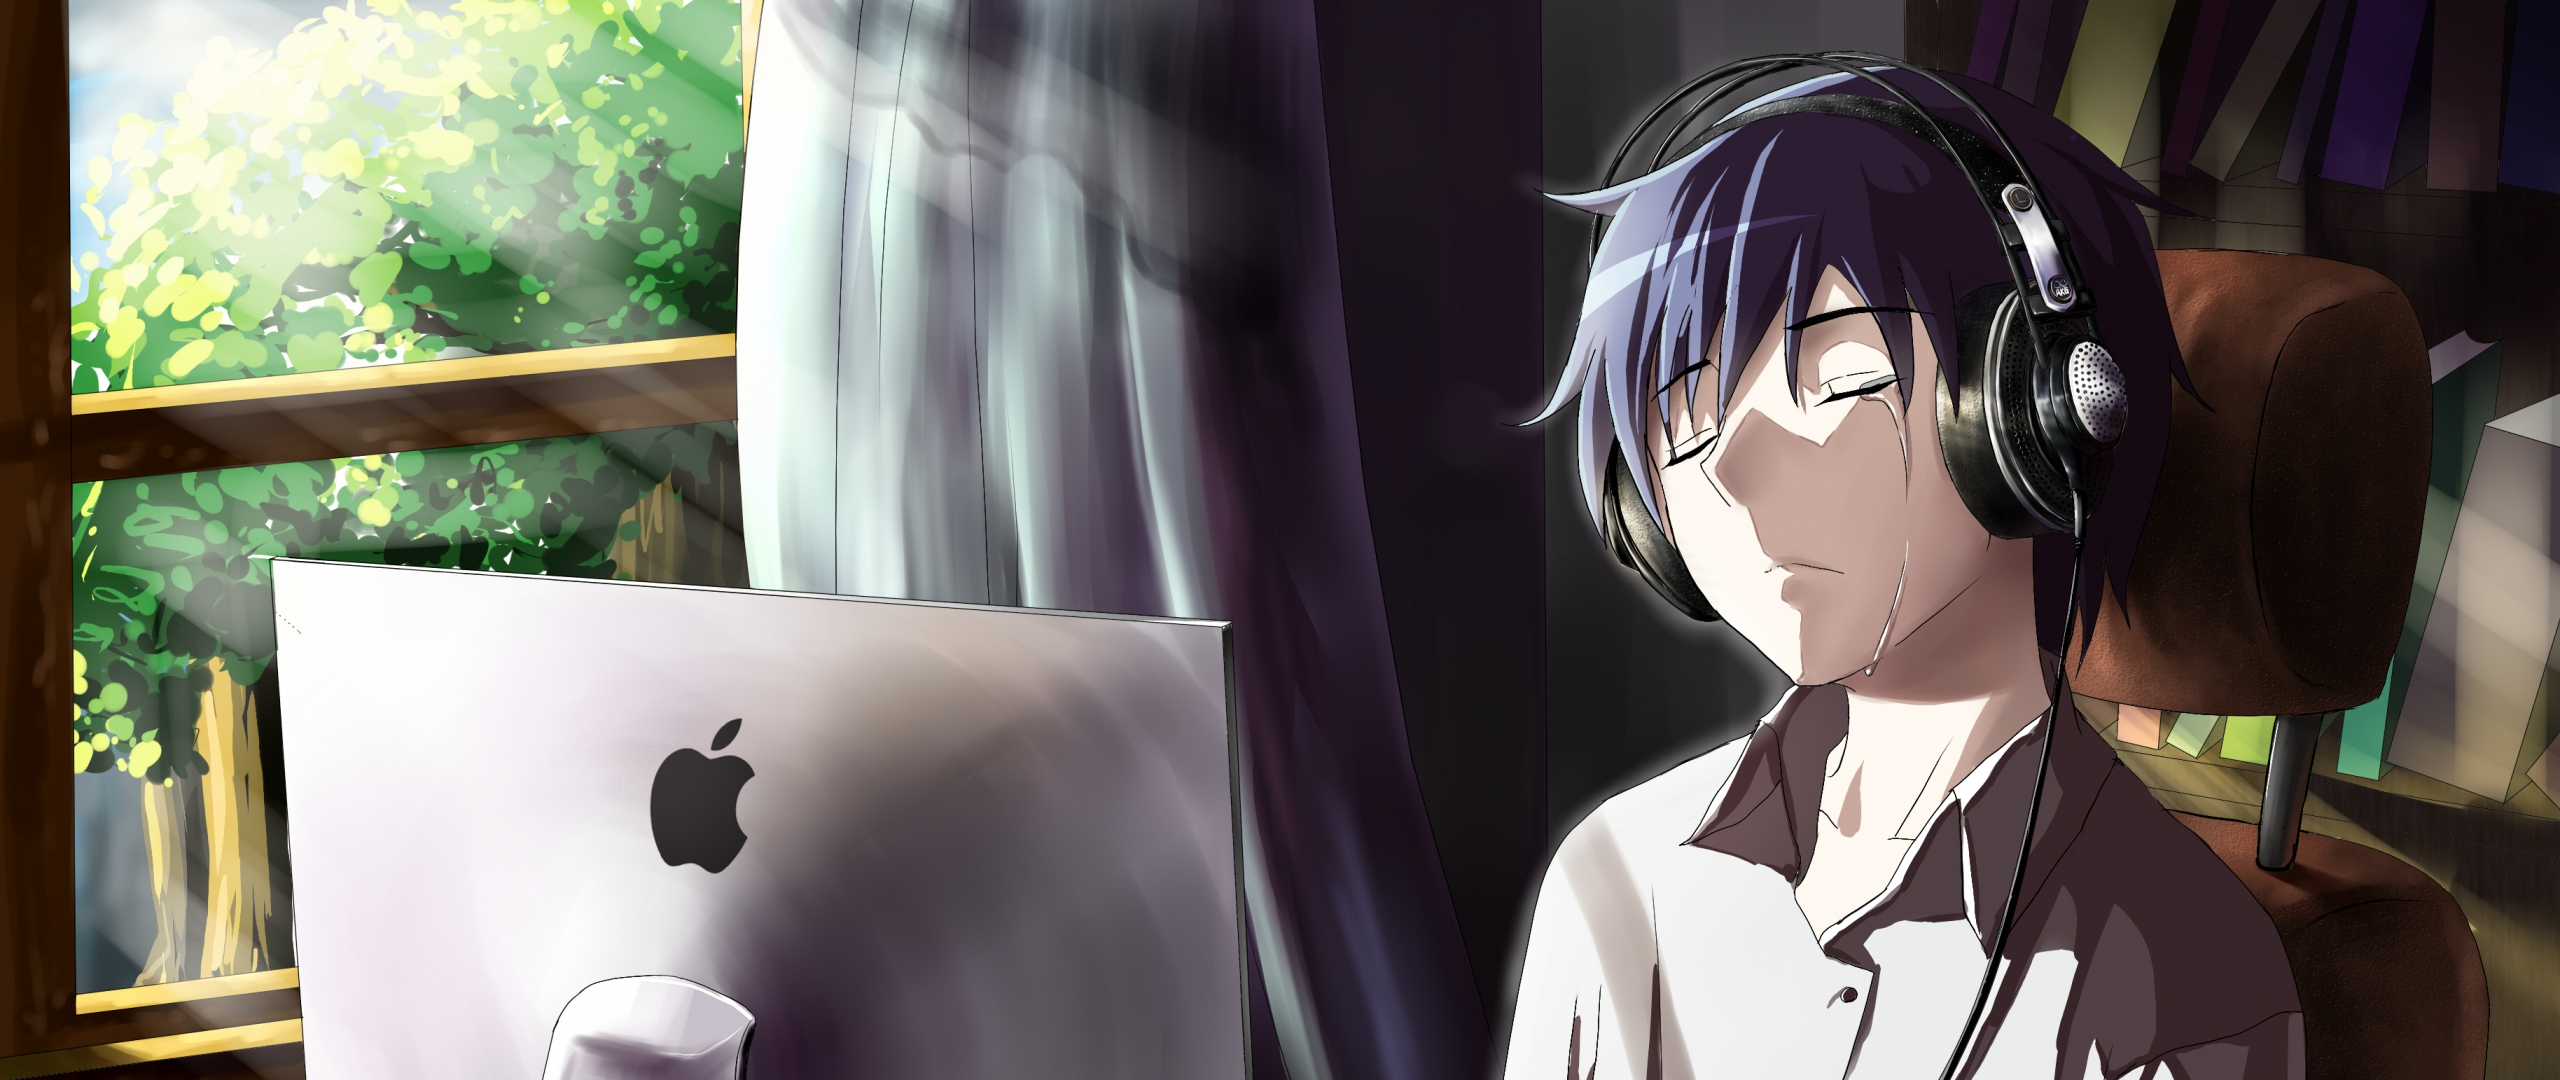 1280x800 Anime Boy Crying In Front Of Apple Laptop 720p Hd 4k